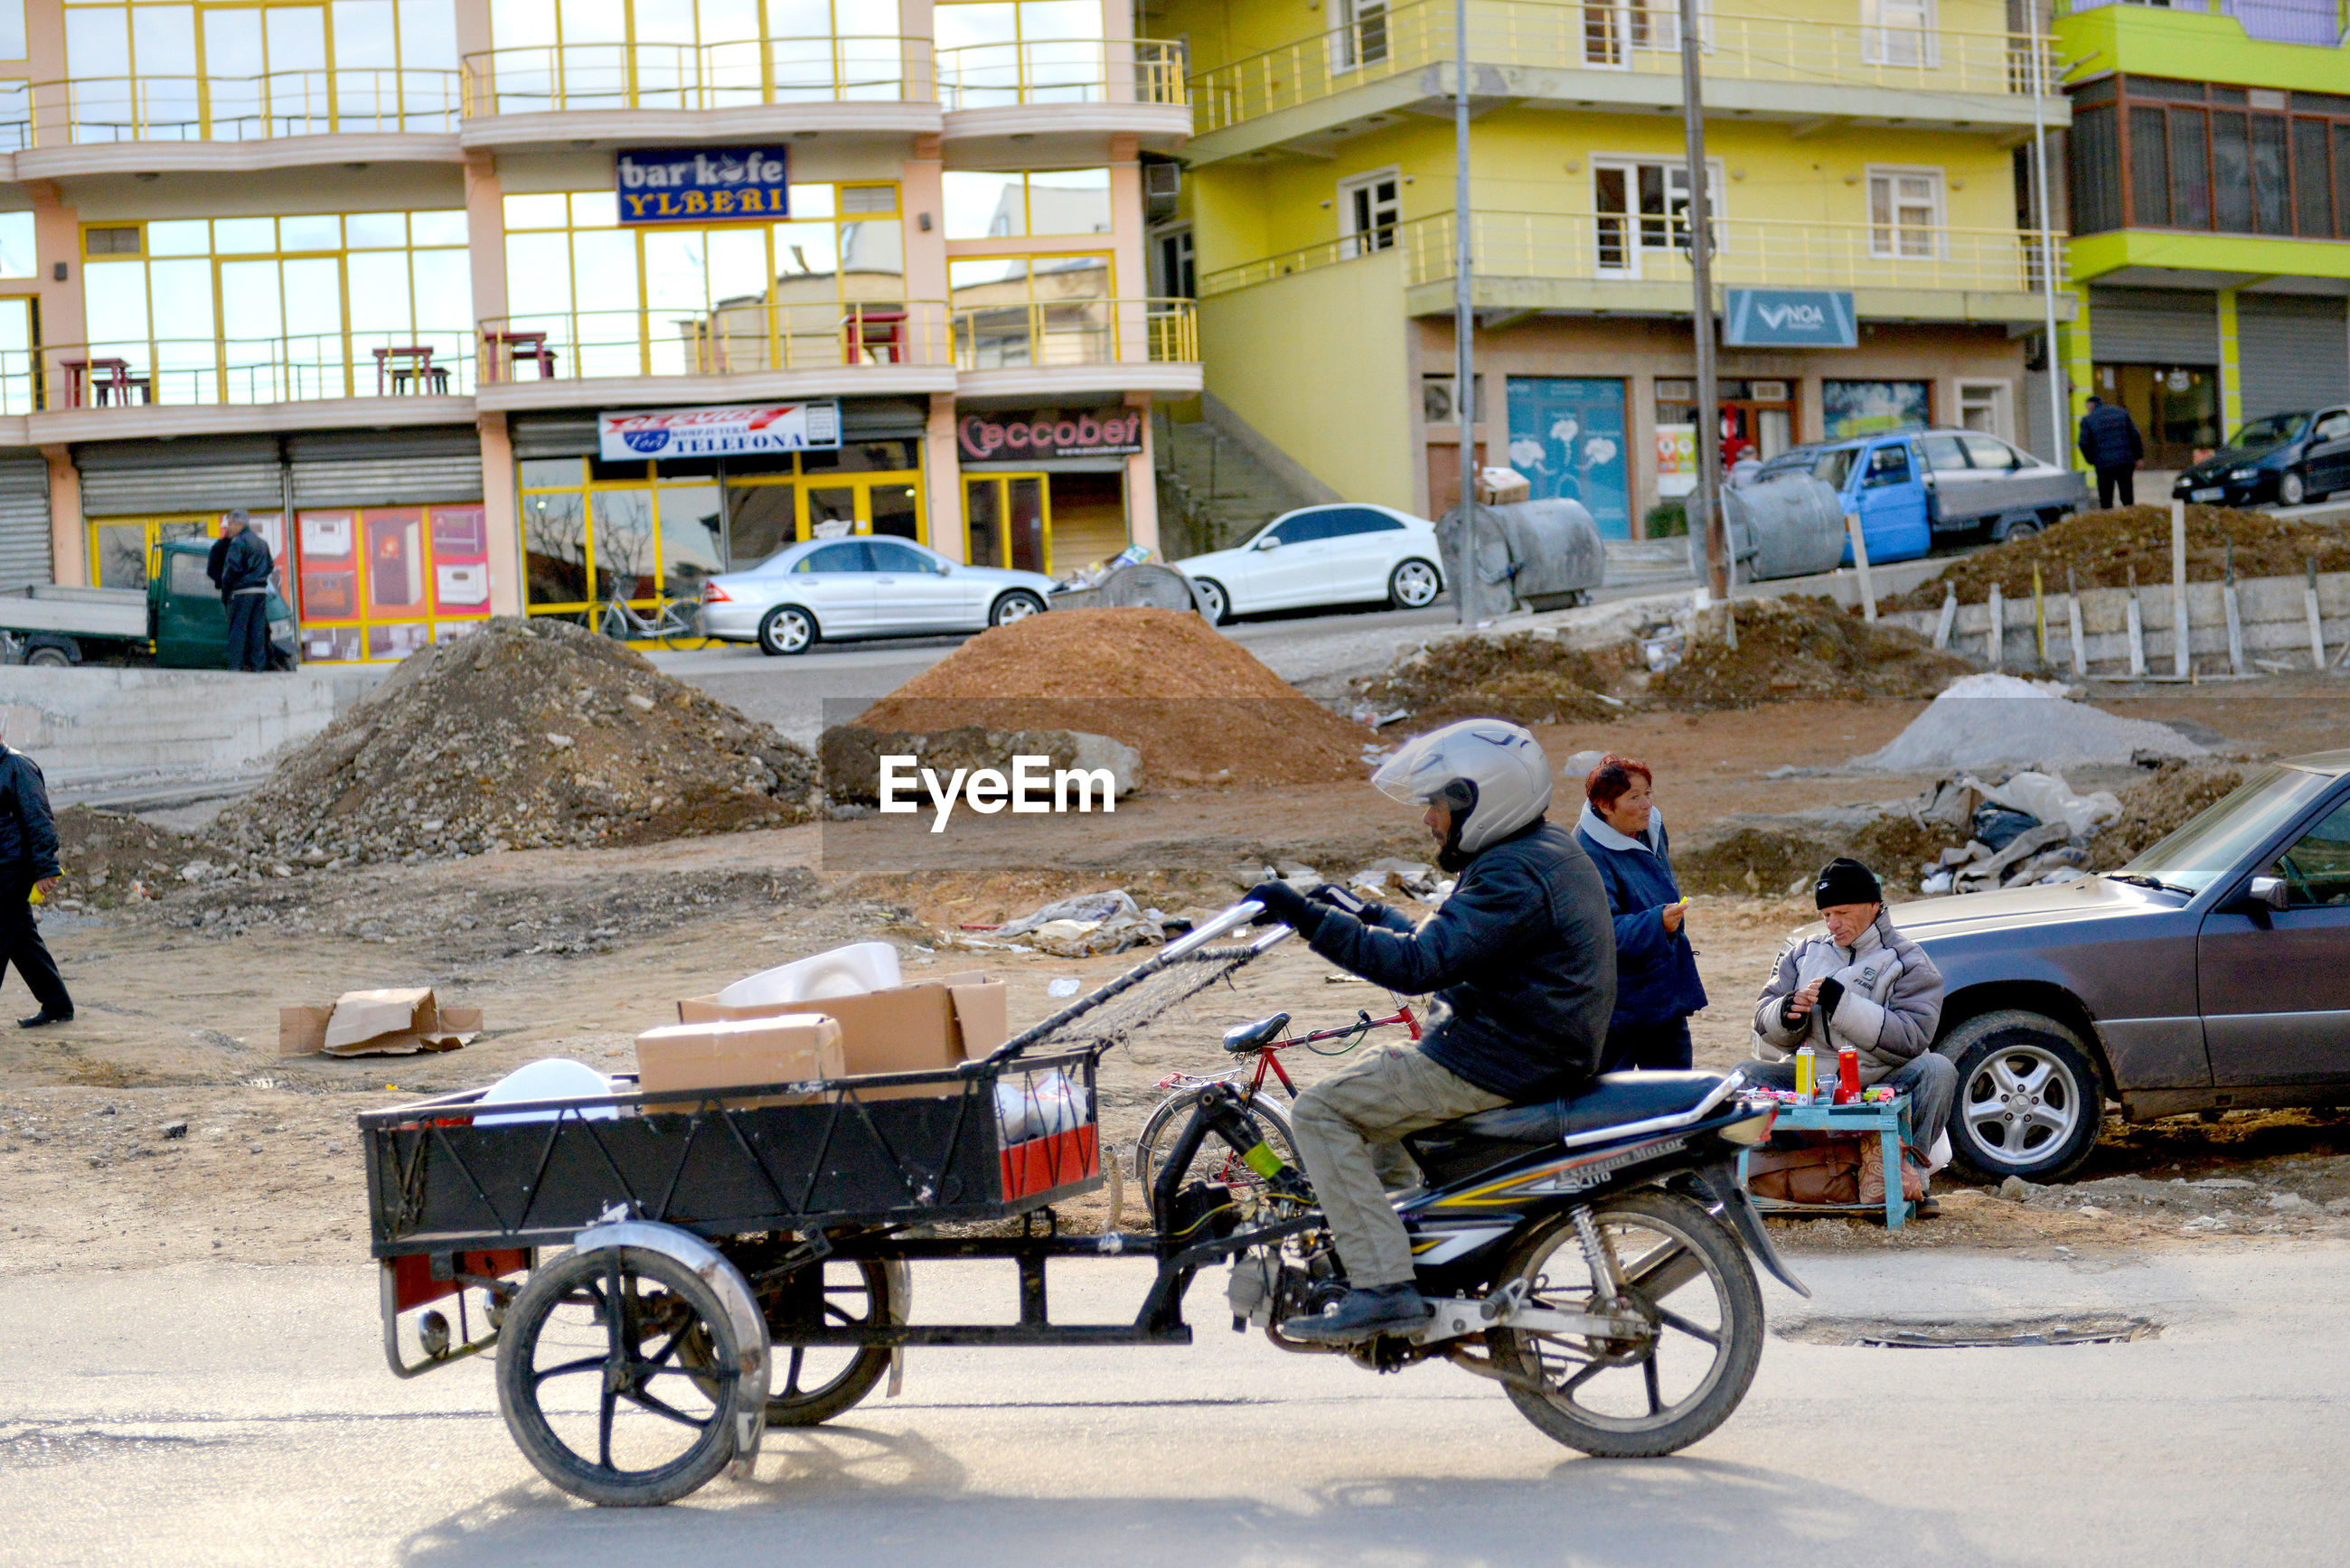 transportation, mode of transport, full length, architecture, street, day, outdoors, land vehicle, city life, road, built structure, one person, real people, city, men, building exterior, occupation, one man only, working, only men, adult, adults only, young adult, people